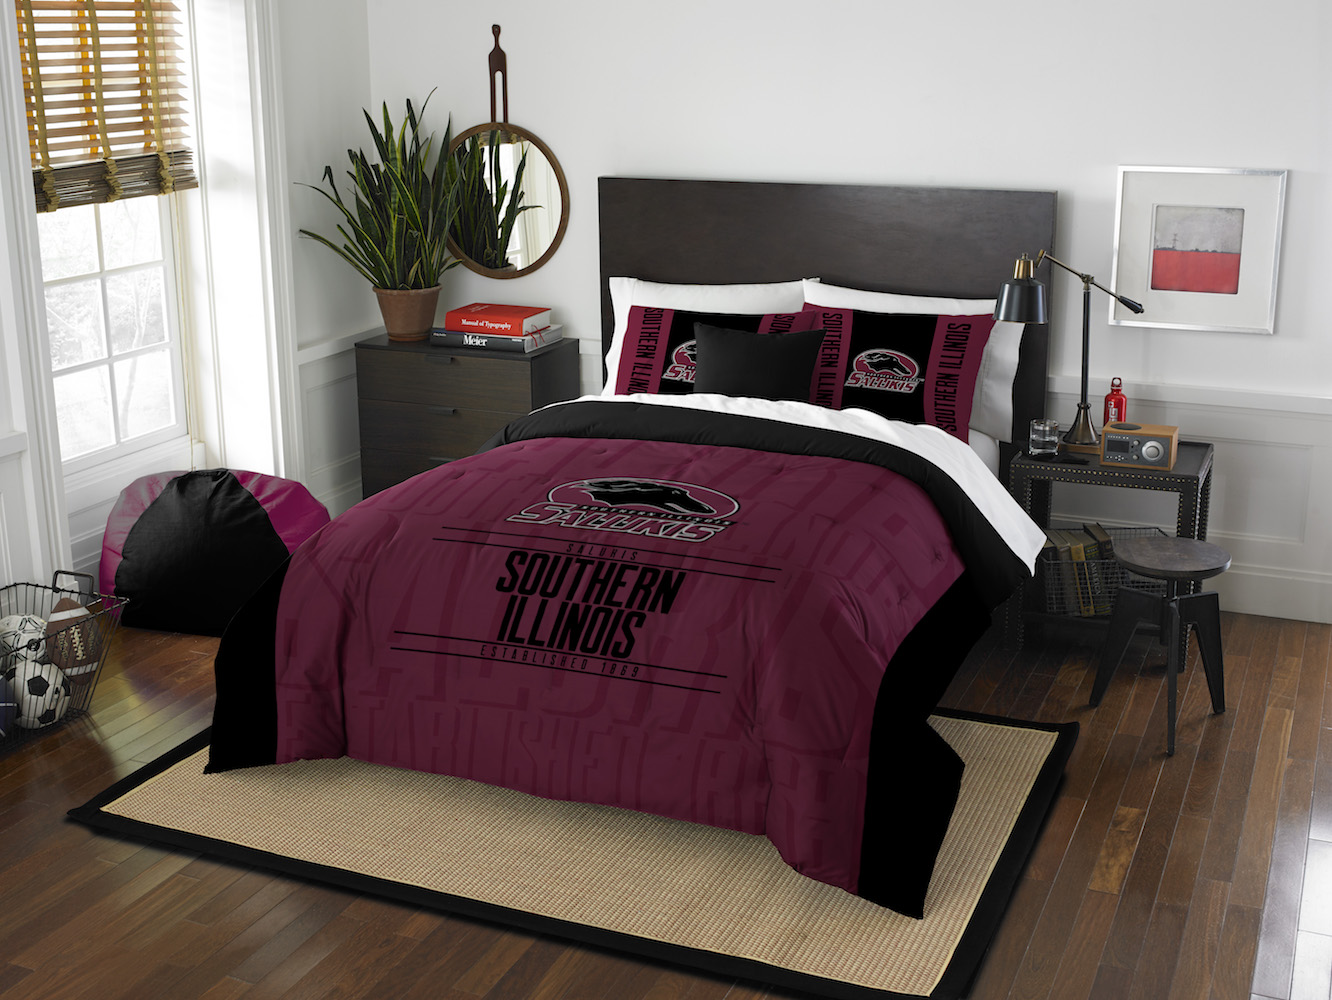 Southern Illinois Salukis QUEEN/FULL size Comforter and 2 Shams